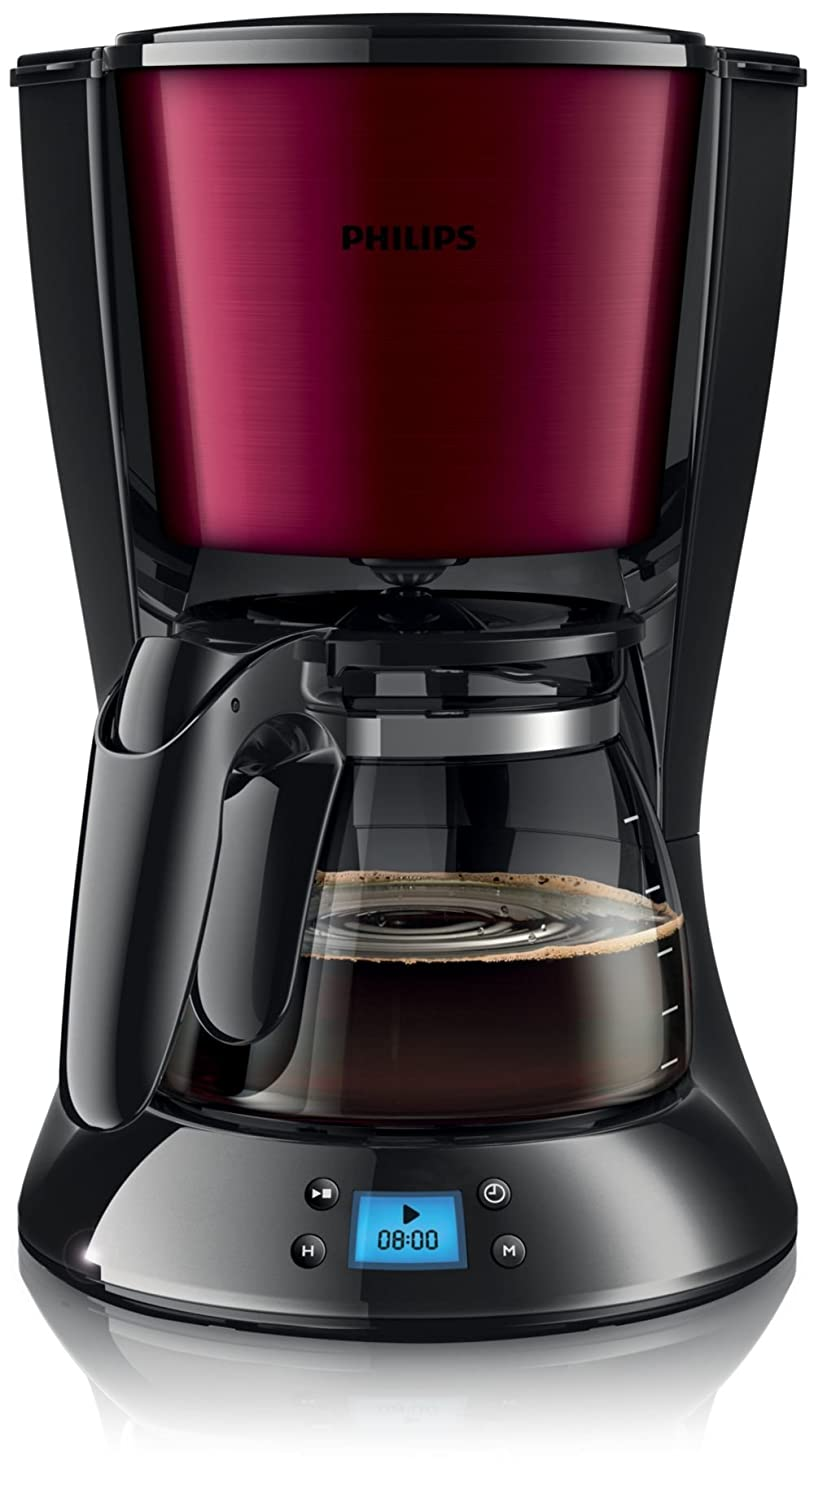 Philips Daily Collection HD7459 - coffee makers (freestanding, Semi-auto, Drip coffee maker, Ground coffee, Americano, Burgundy, Stainless steel) HD7459/31